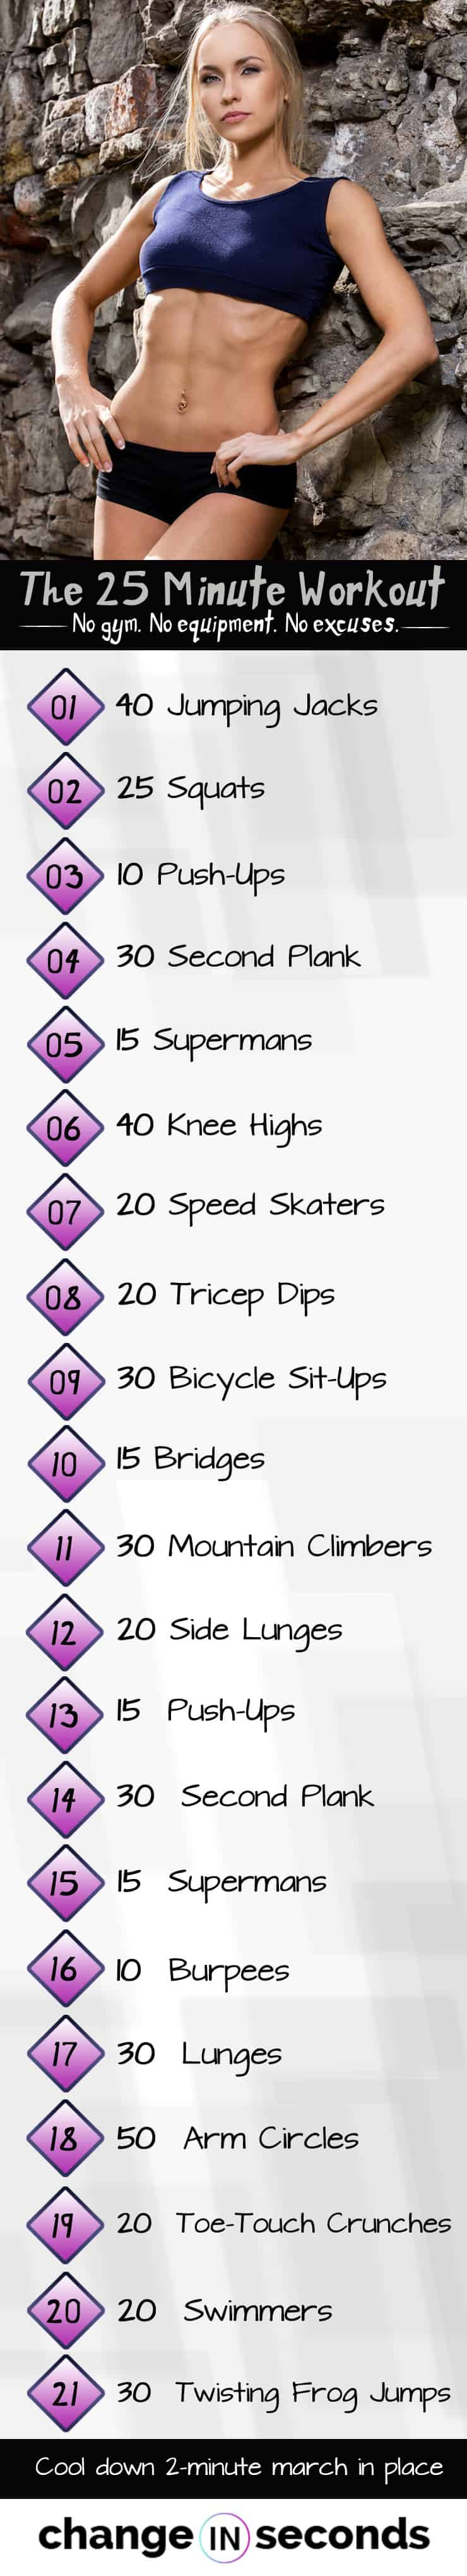 The 25 Minute Workout At Home